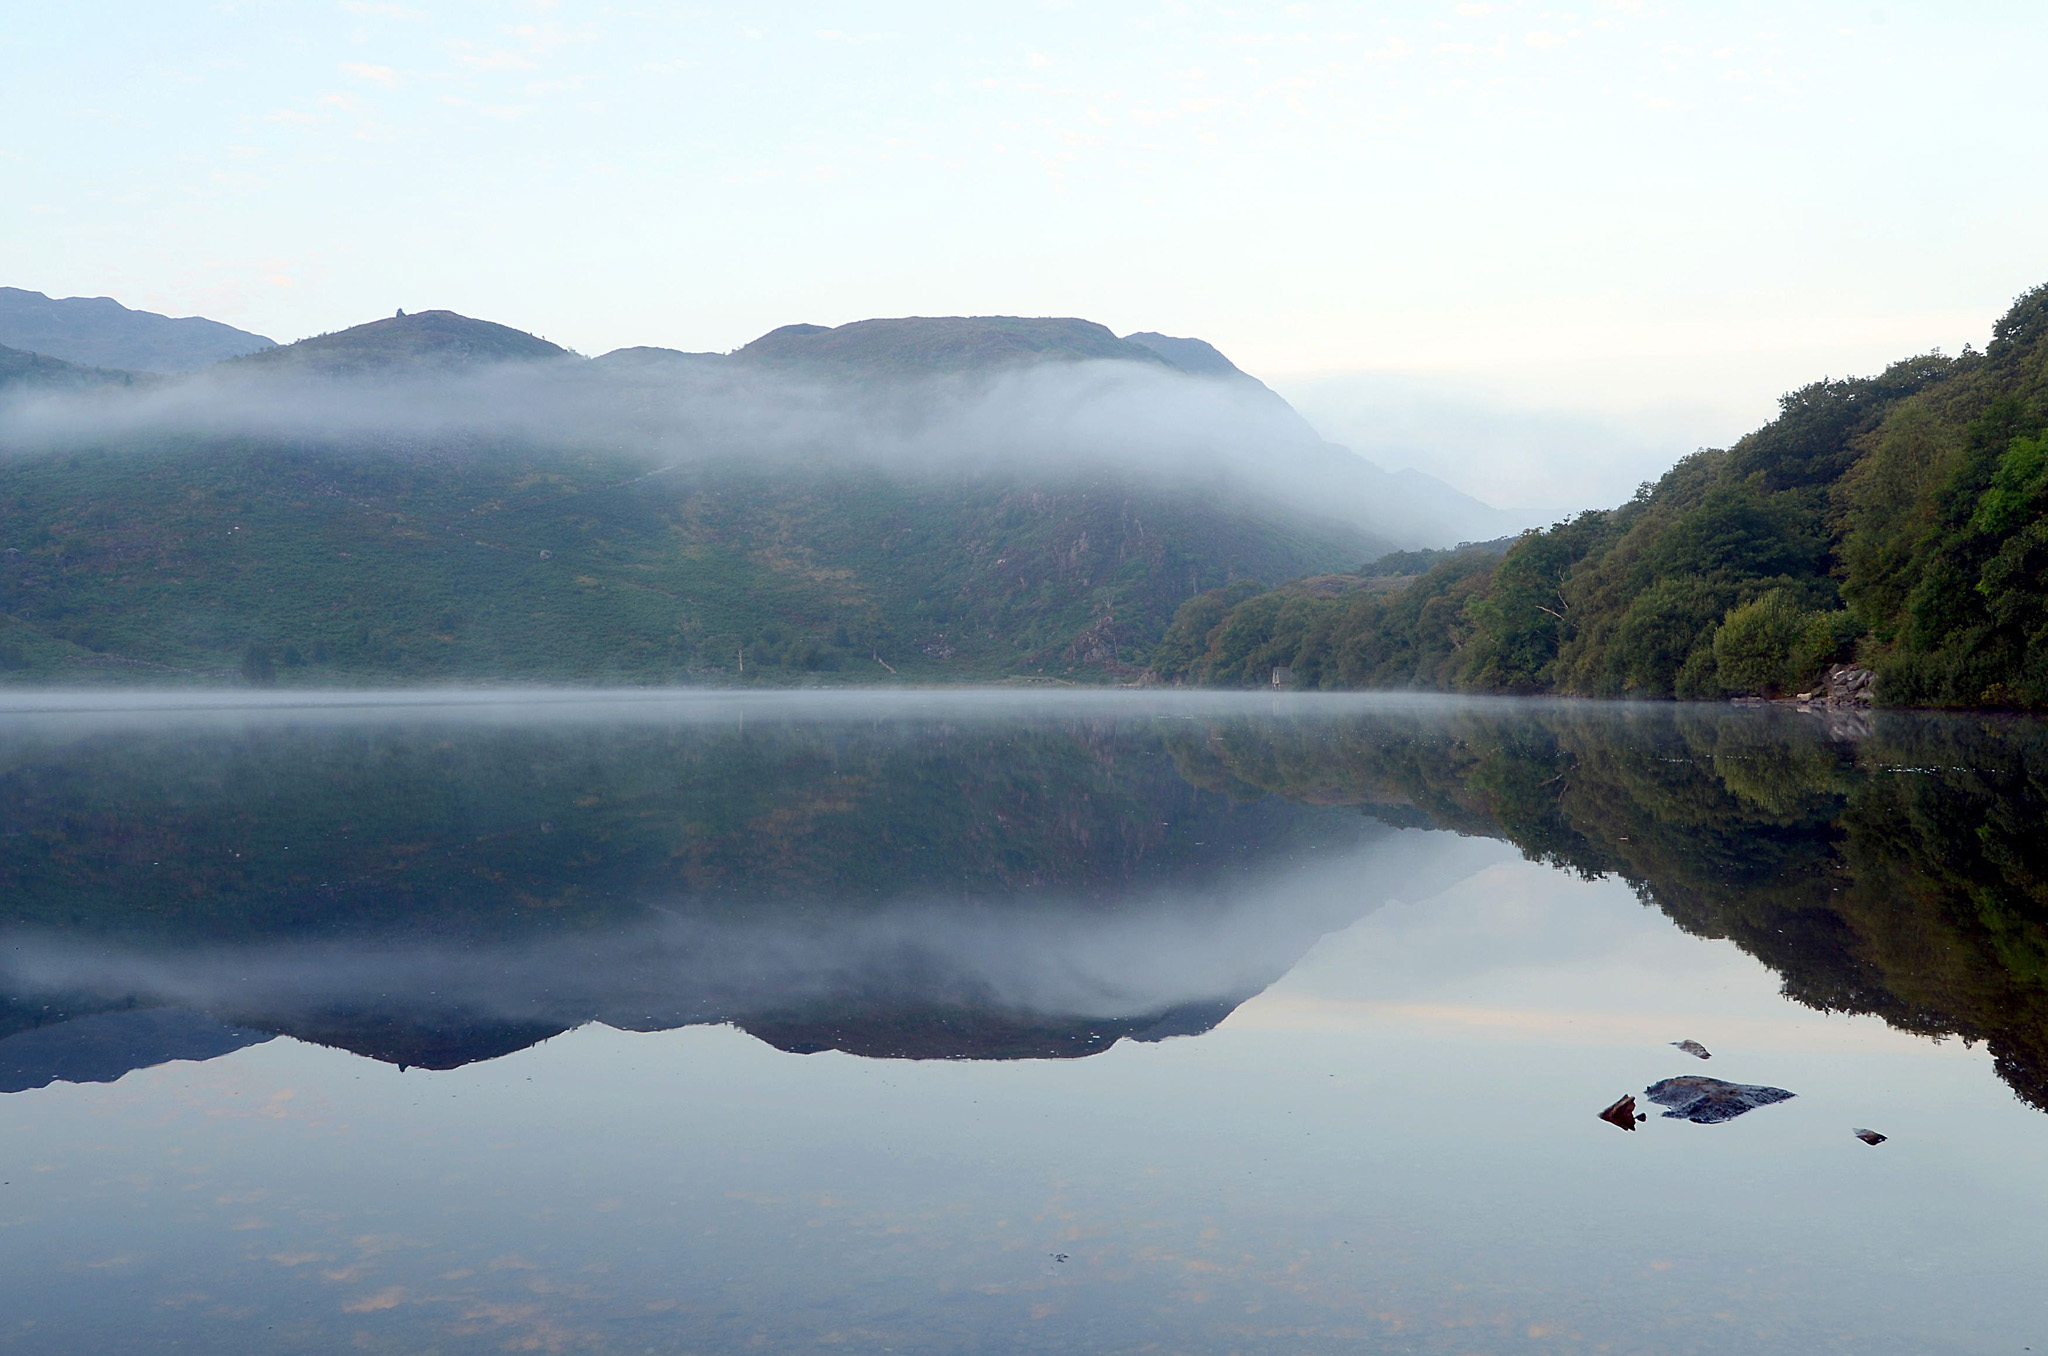 Autumn weather Sept 10th 2014...A general view of the sunrise over Llyn Dinas, near Beddgelert, Snowdonia, North Wales. PRESS ASSOCIATION Photo. Picture date: Wednesday September 10, 2014. Photo credit should read: Neil Squires/PA Wire